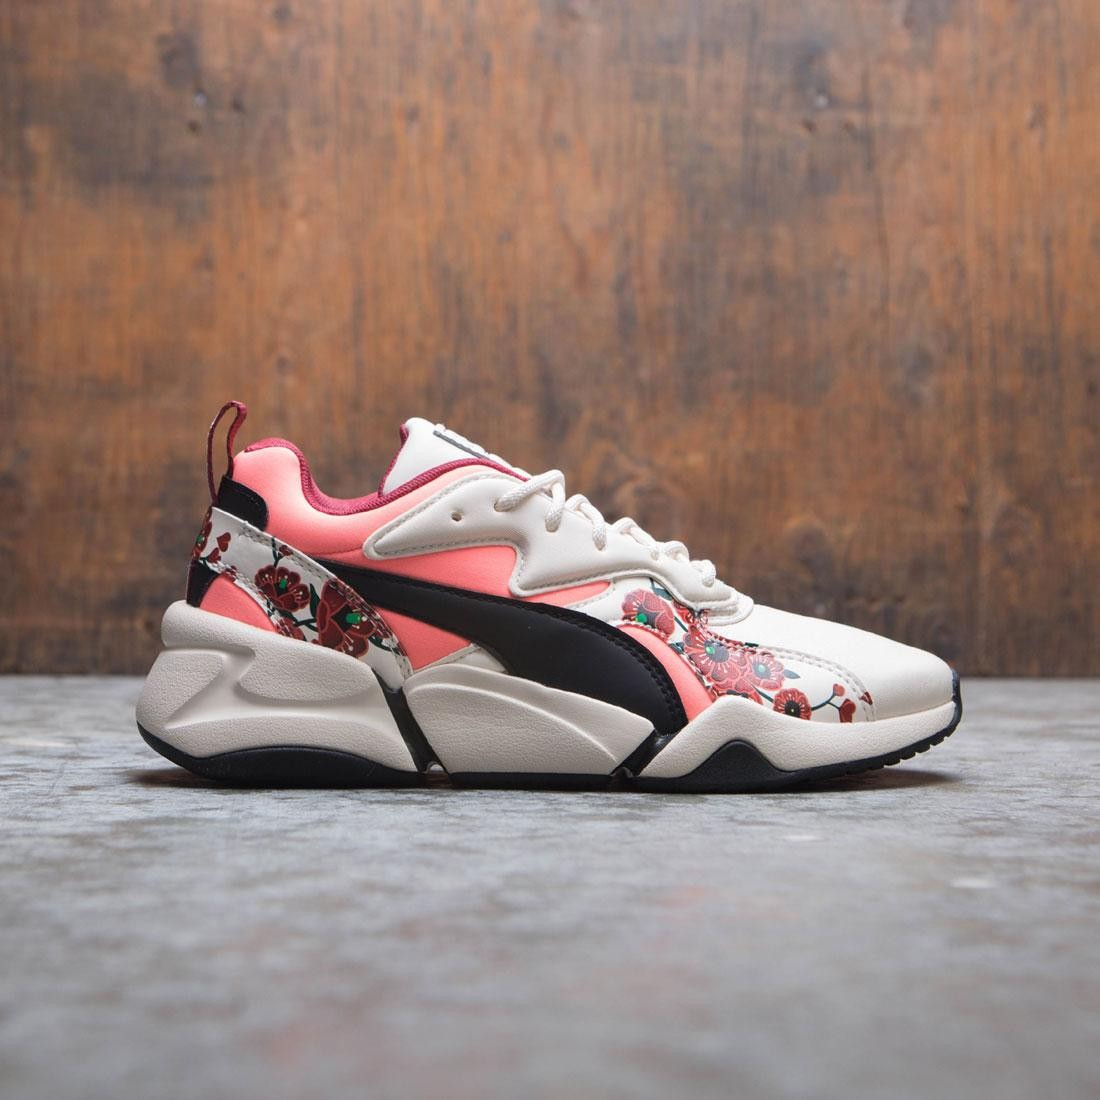 Puma x Sue Tsai Women Nova Cherry Bombs (pink / powder puff / black)